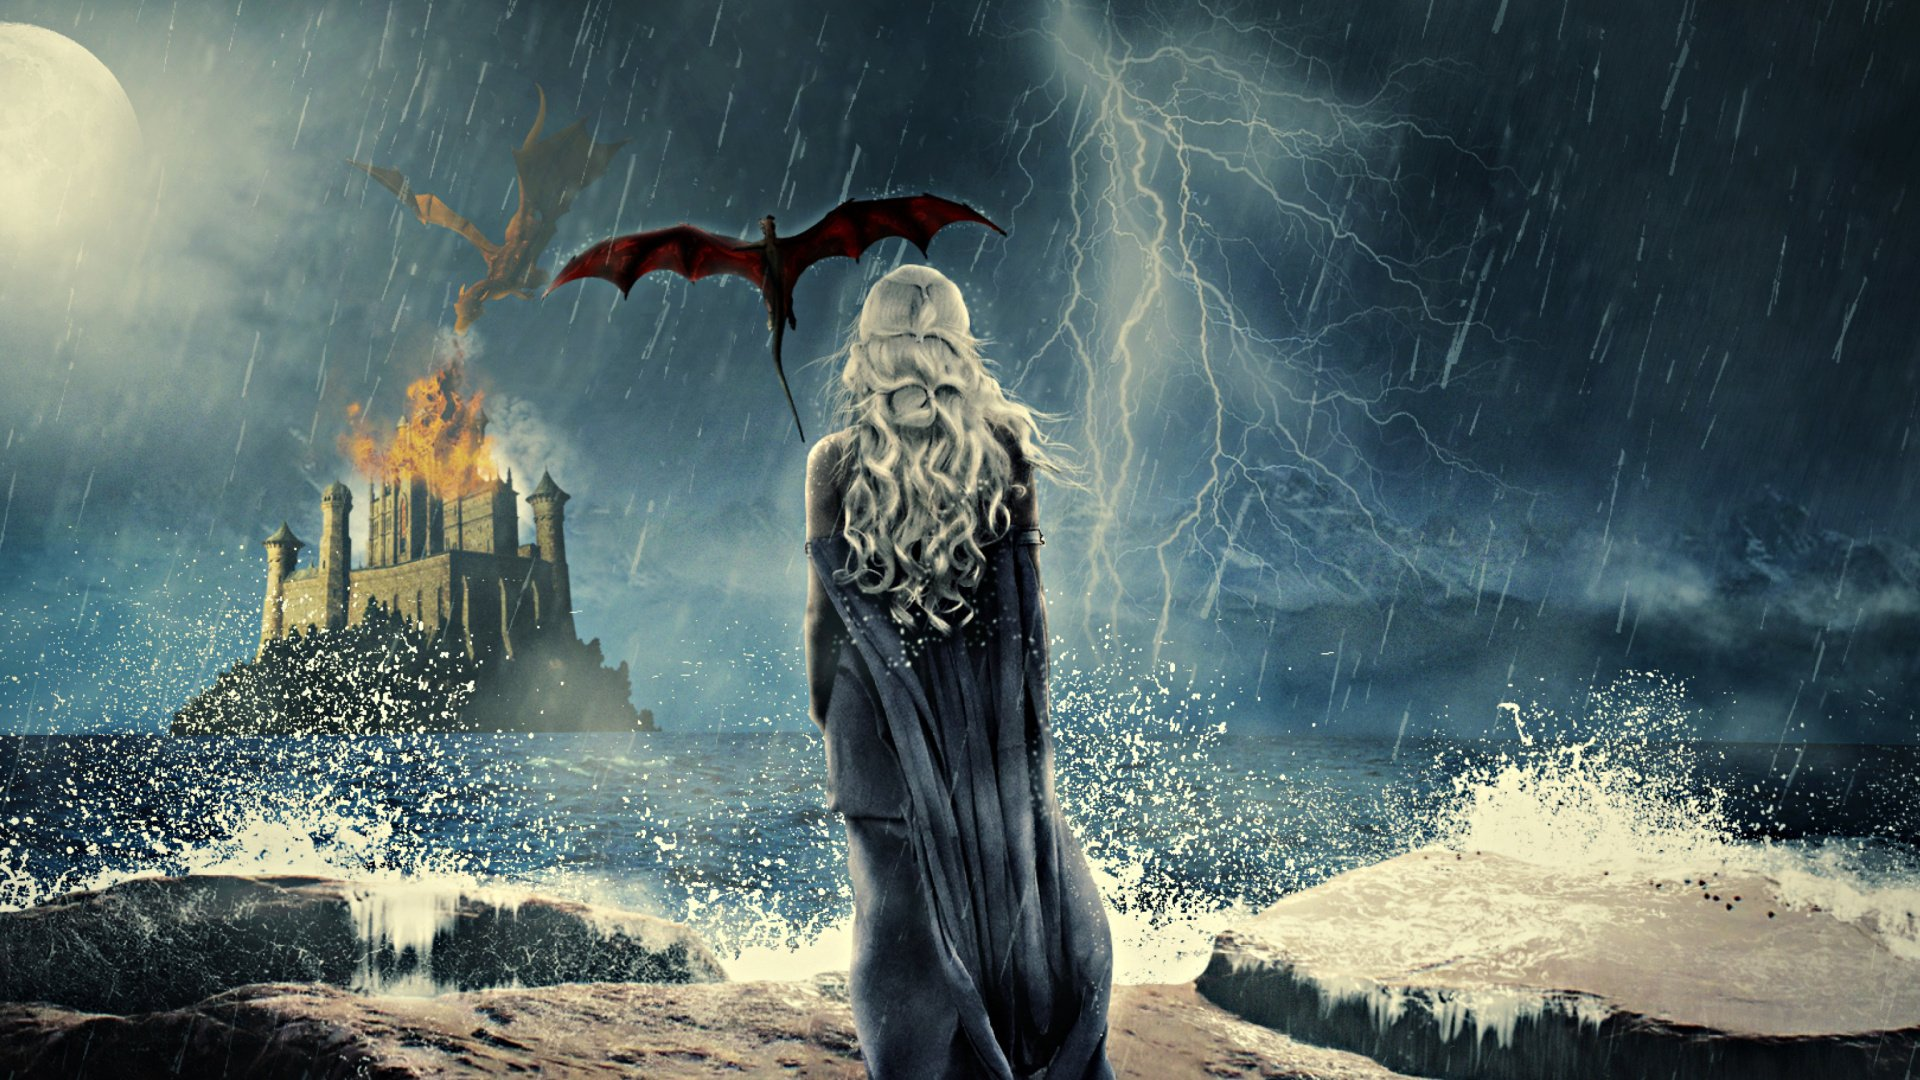 Game Of Thrones 1920x1080 android wallpaper 1920x1080